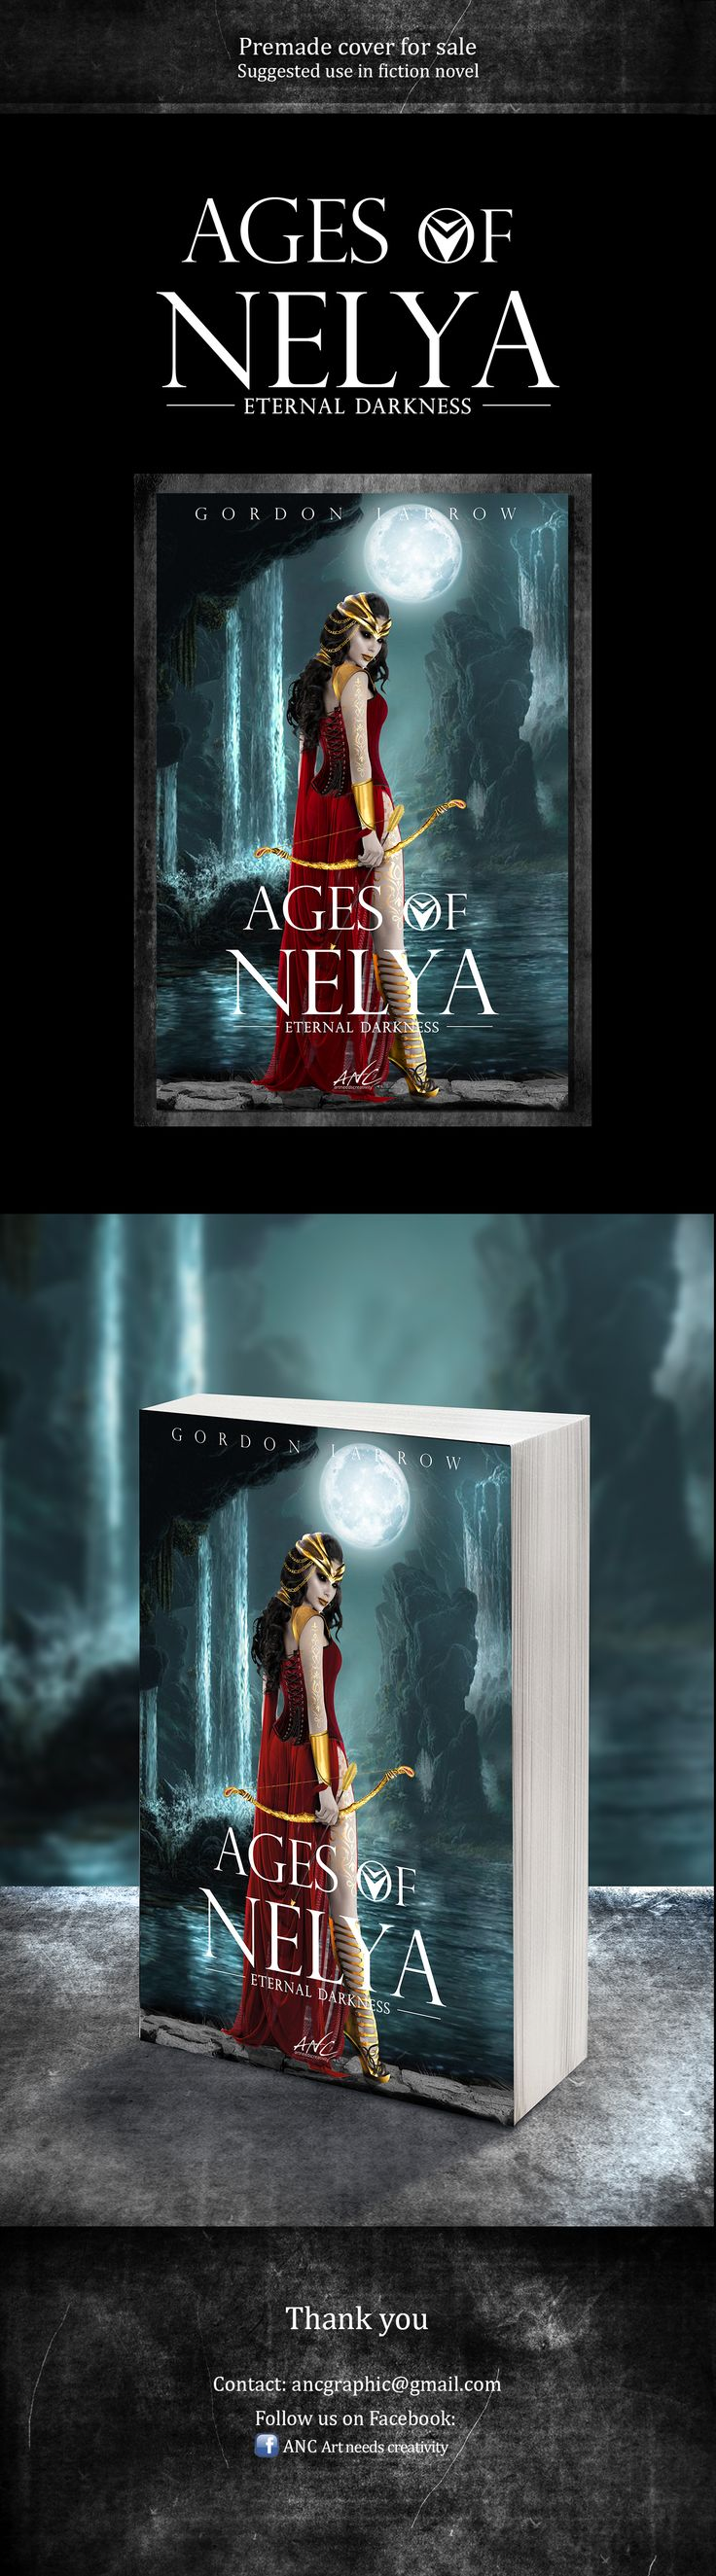 "Check out my @Behance project: ""Premade book cover: Ages of Nelya"" https://www.behance.net/gallery/45025453/Premade-book-cover-Ages-of-Nelya"